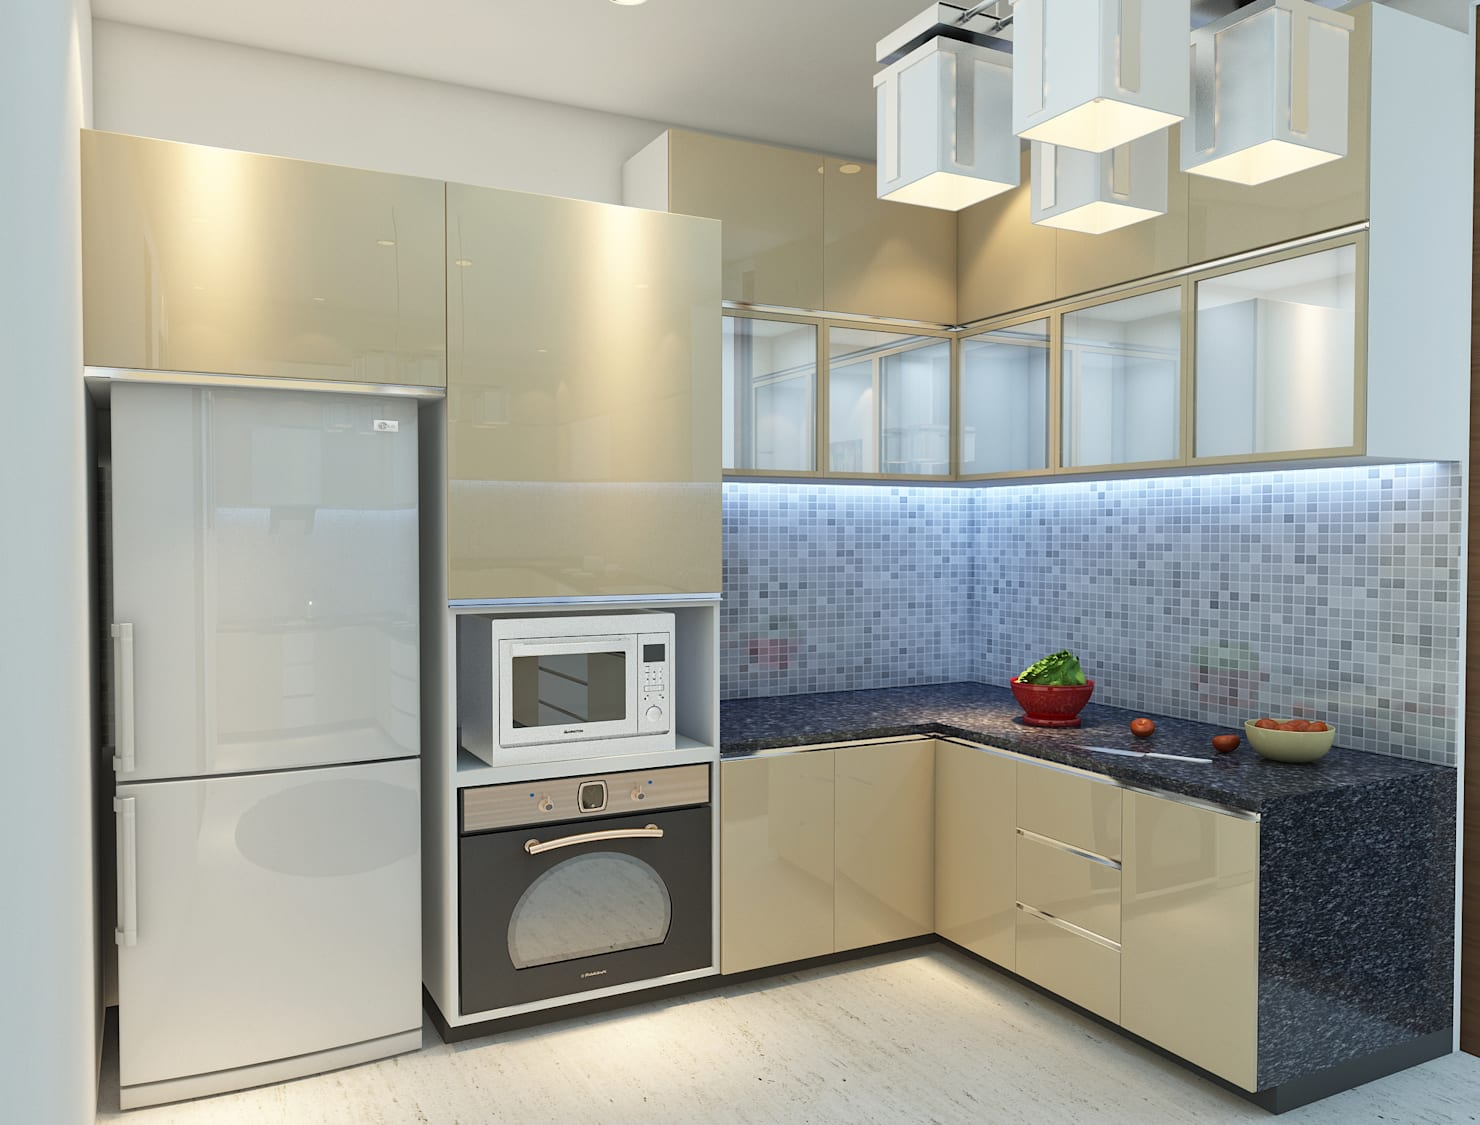 Which kitchen designs are ideal for Indian houses?